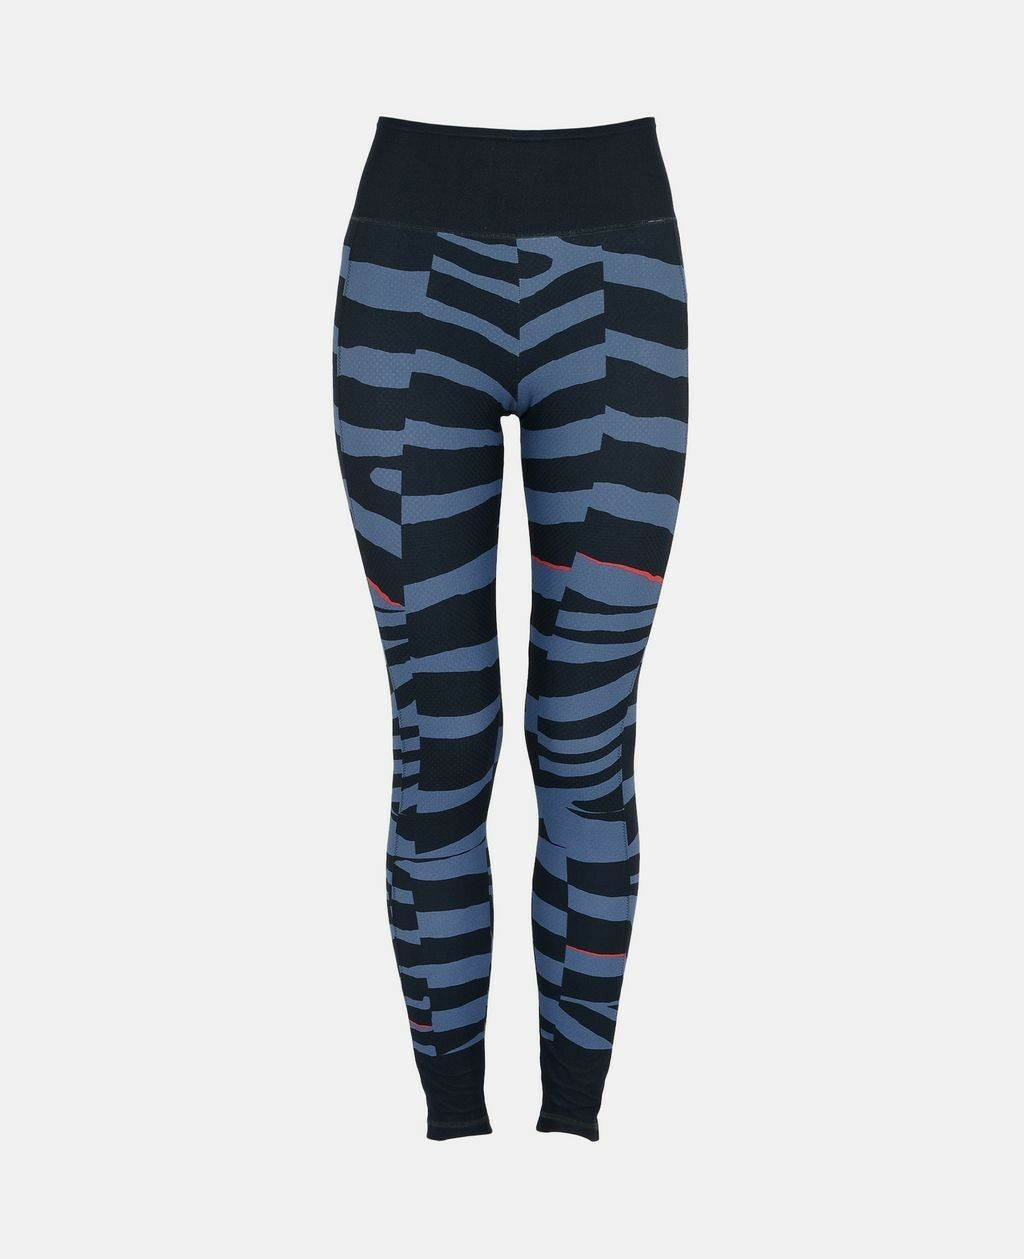 Stella McCartney Adidas bluee Miracle Sculpt Compression Tights size L 14-16